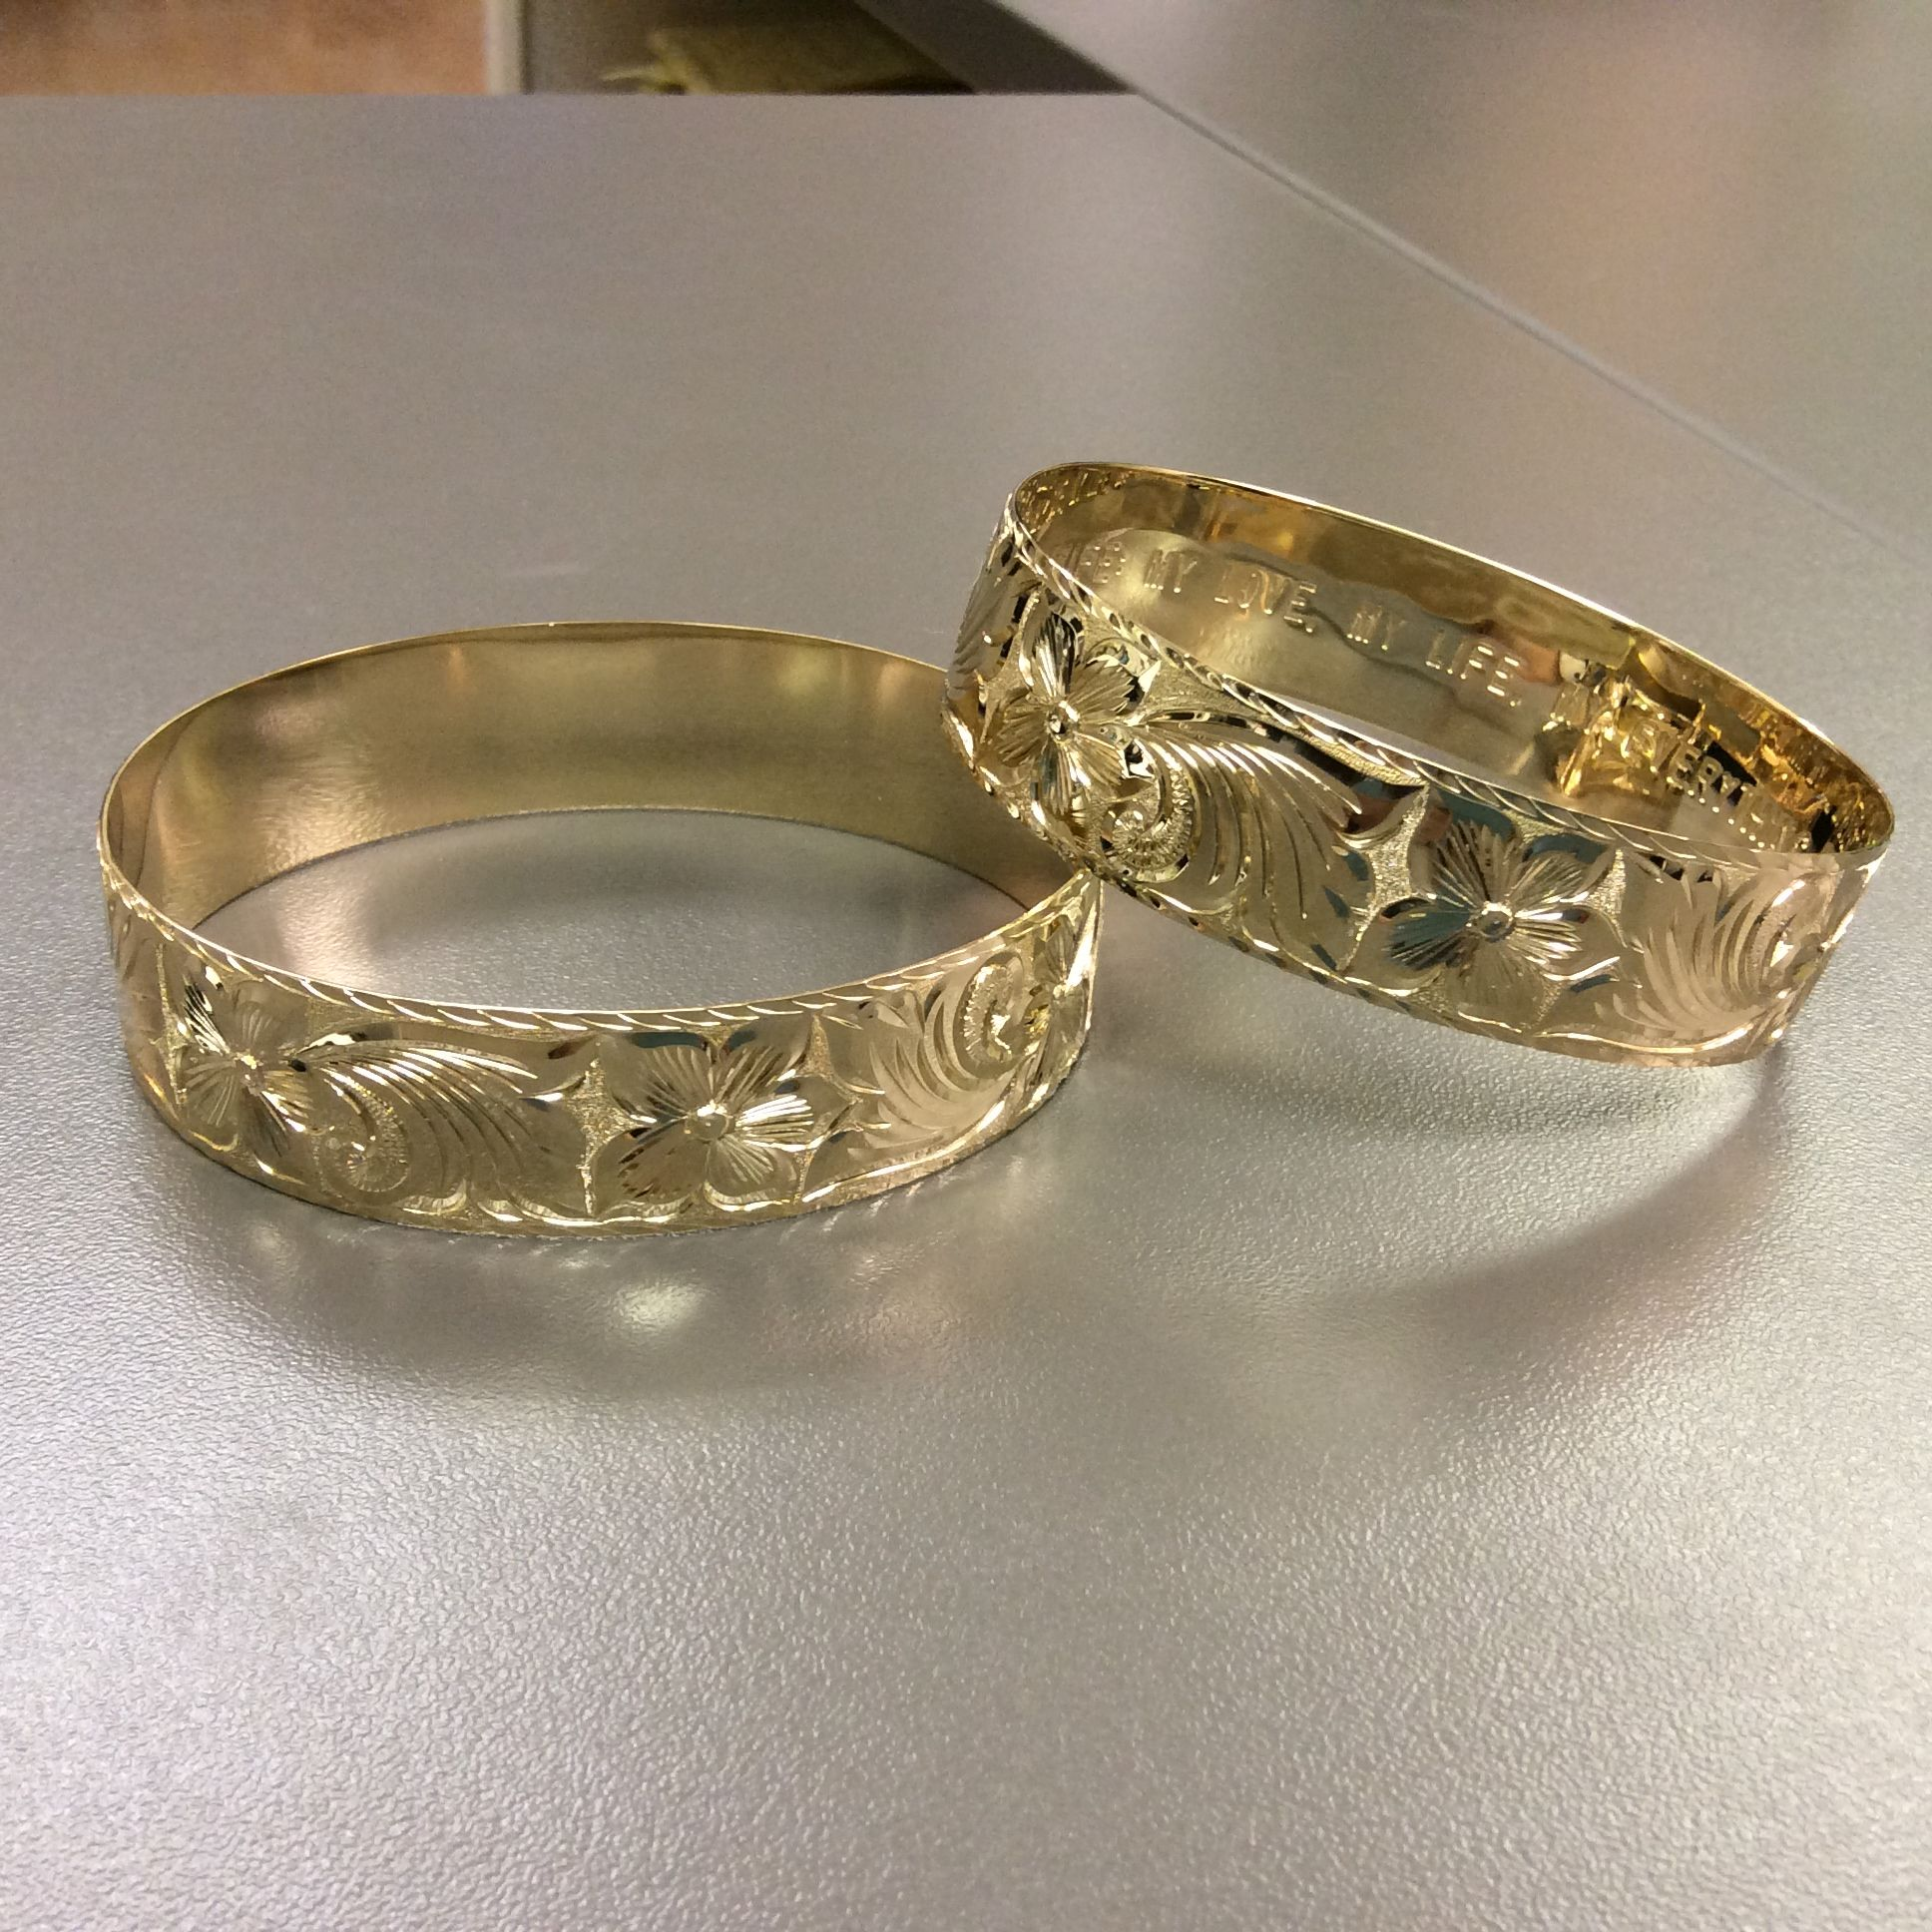 Custom 14k Yellow Gold Hawaiian Heirloom Bracelets In 18mm Lite Weight And Both With Queen Emma Design Wedding Rings Hawaiian Bracelets Custom Wedding Rings